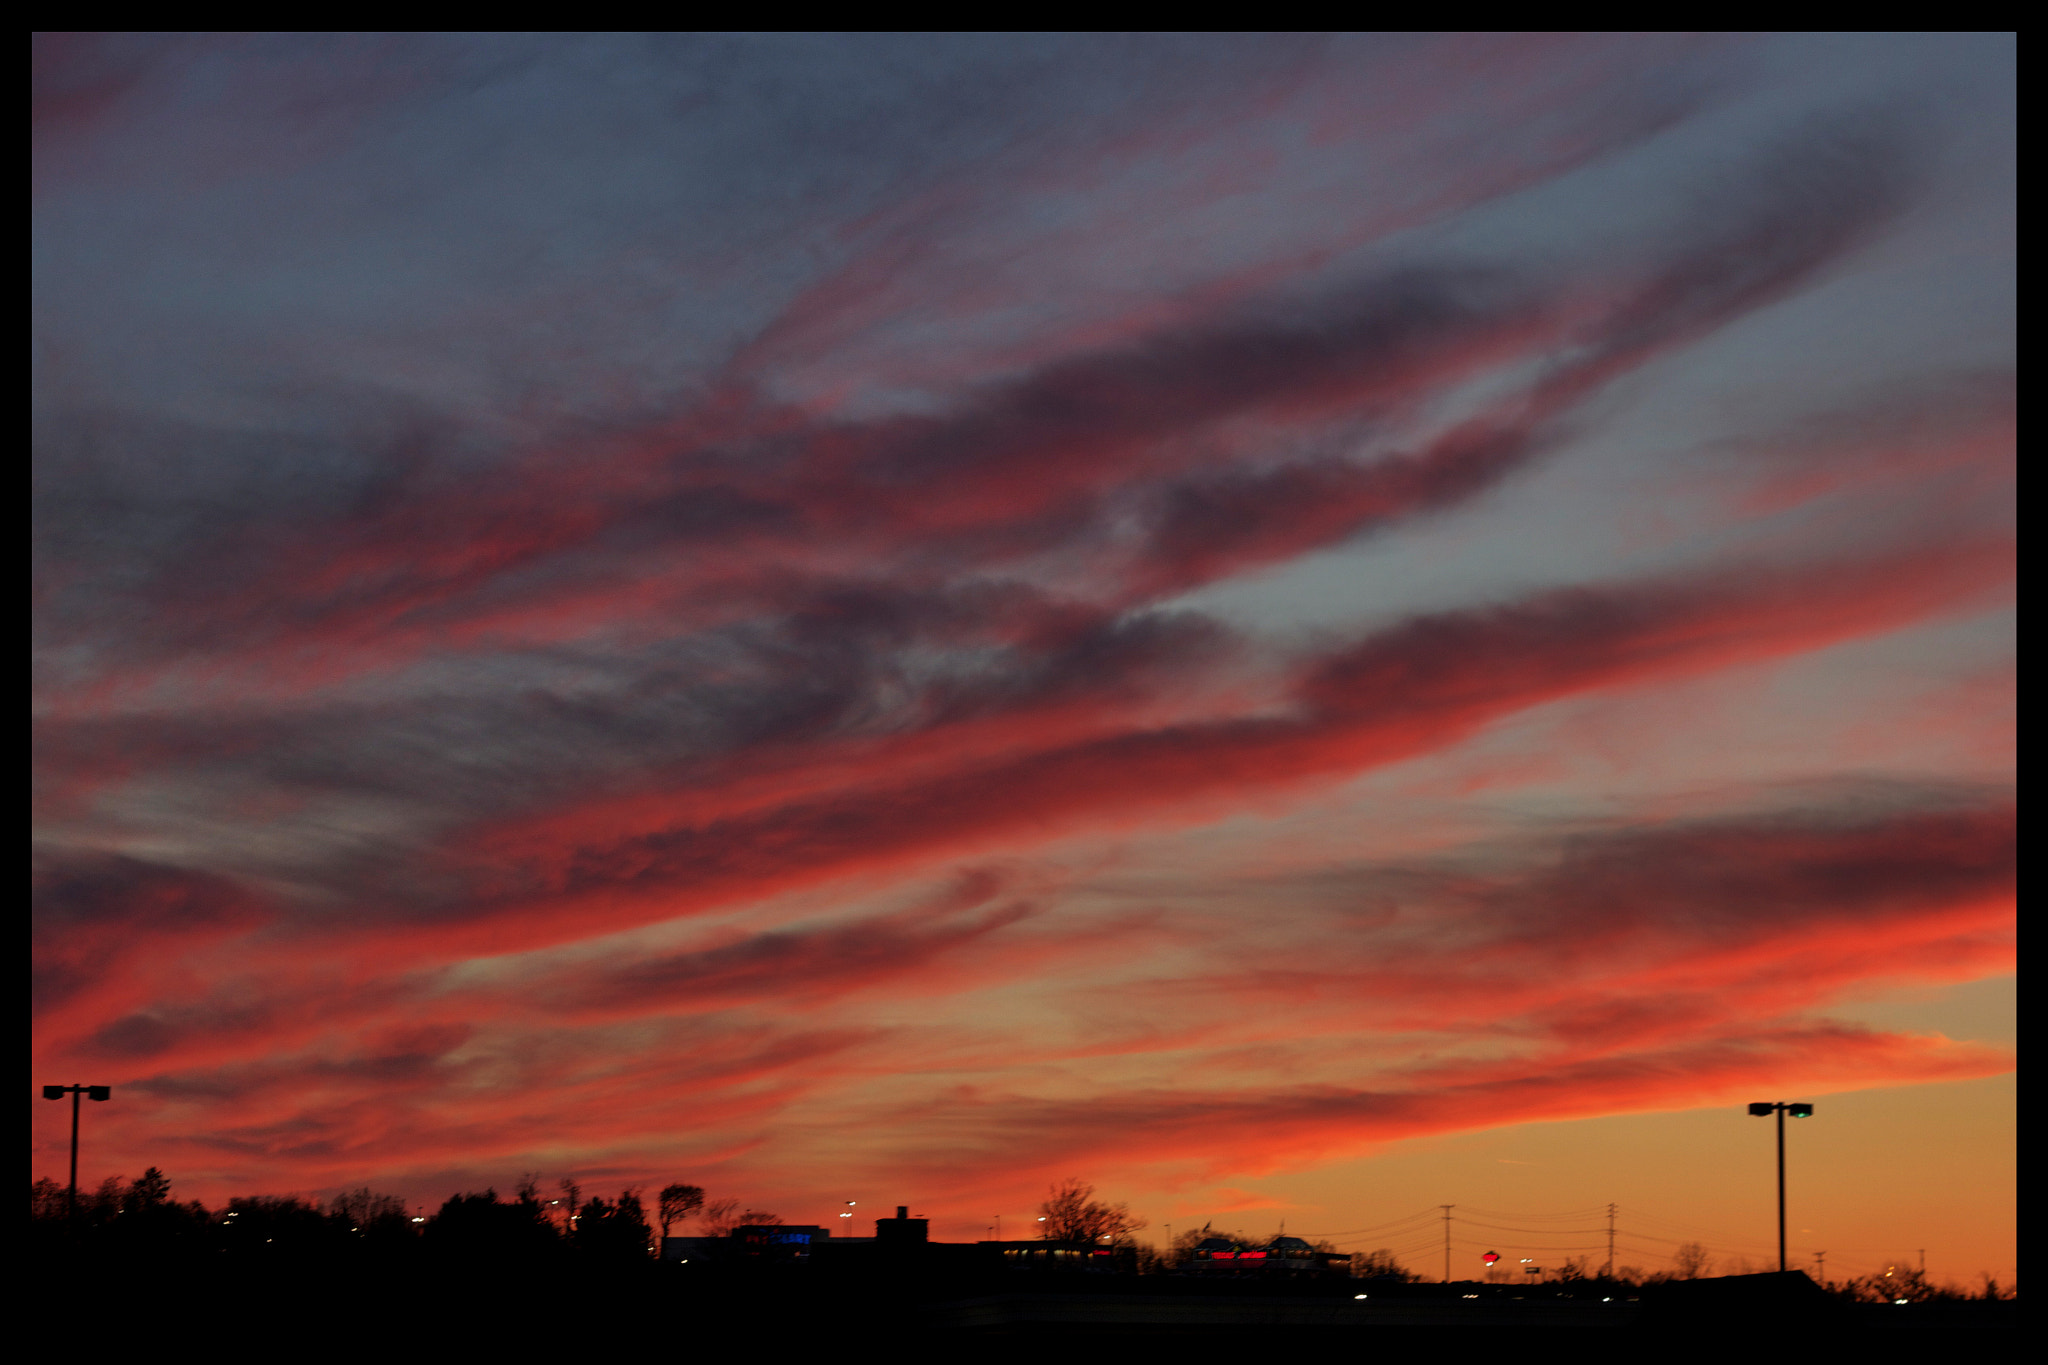 Photograph Sunset by Aiken Fisher on 500px